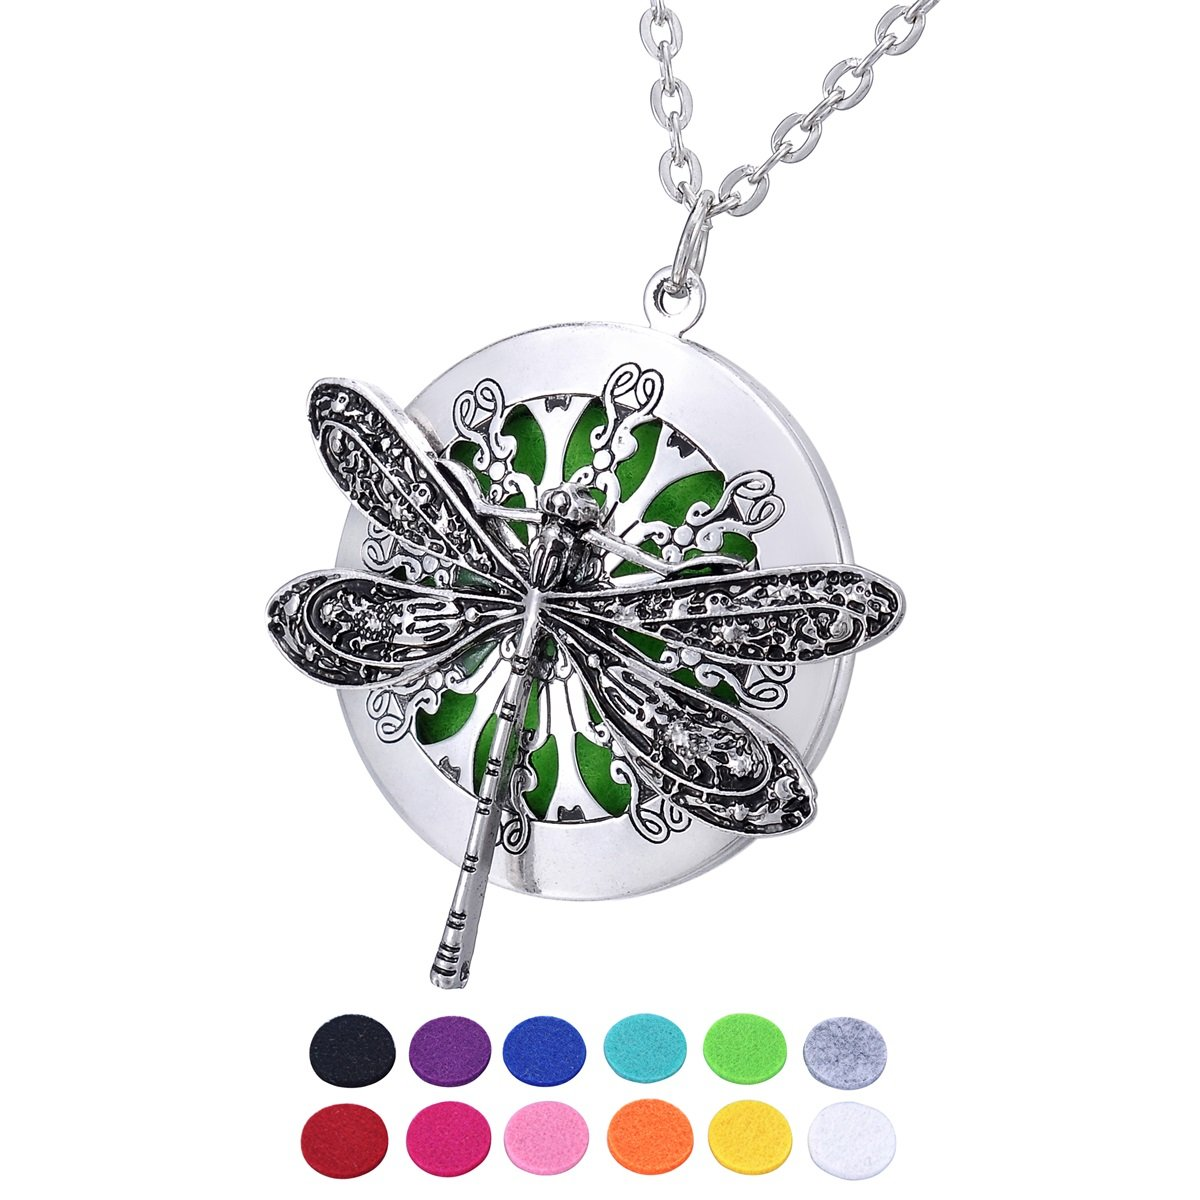 HOUSWEETY Aromatherapy Essential Oil Diffuser Necklace Locket Pendant 12 Refill Pads HOUSWEETYB124924